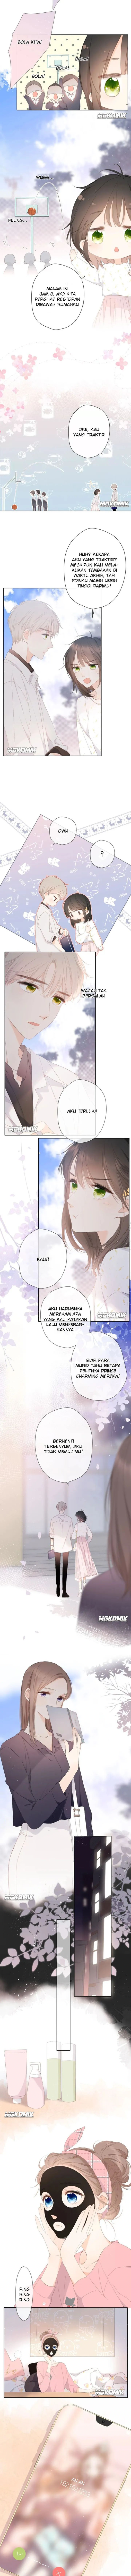 Once More Chapter 9